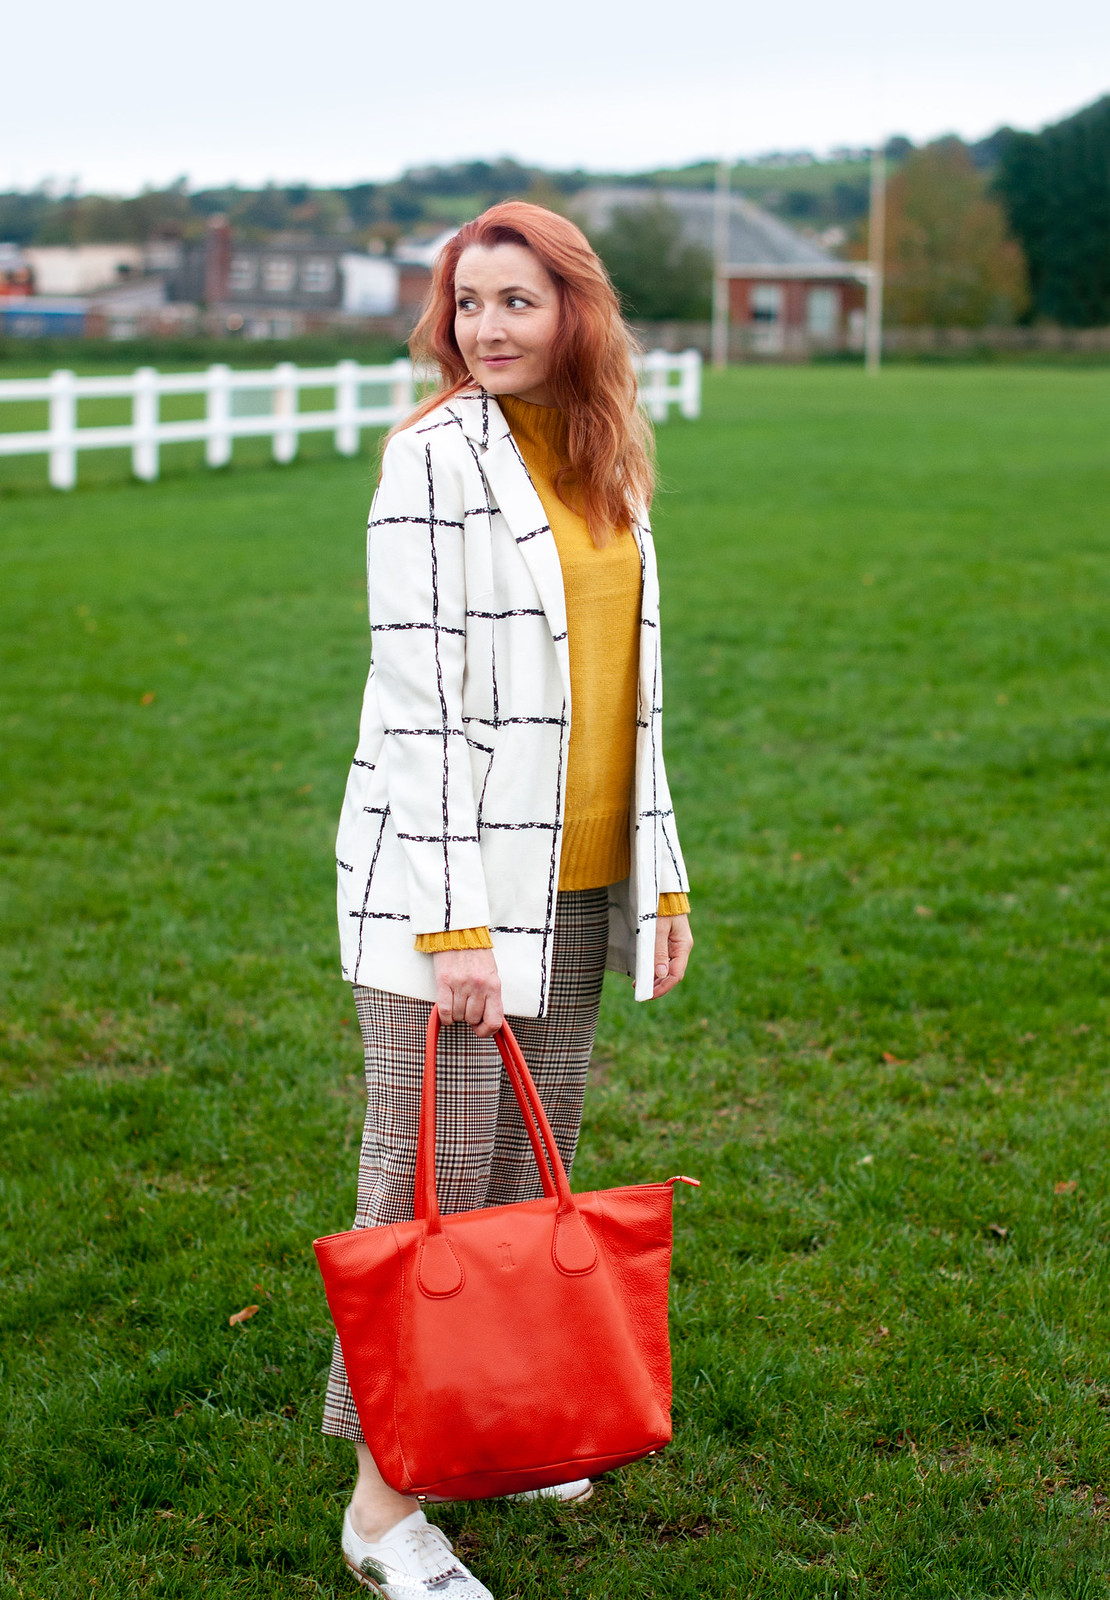 Pattern Mixed Checks With Orange and Yellow in Autumn, Over 40 Style | Not Dressed As Lamb